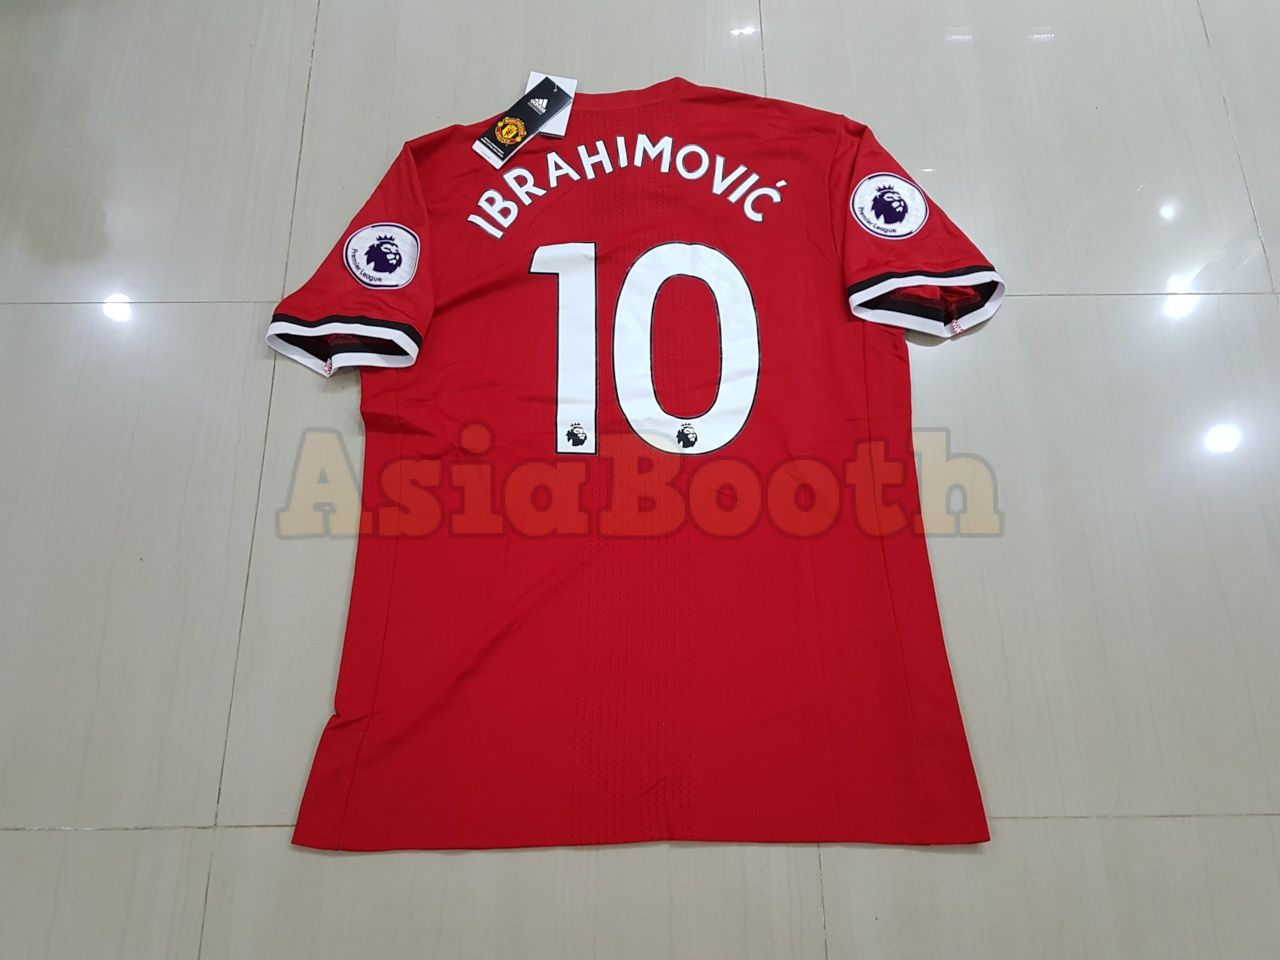 pretty nice 929c3 b61fe 2017-2018 Manchester United Home Jersey Shirt Climacool For Men  (Ibrahimovic #10)